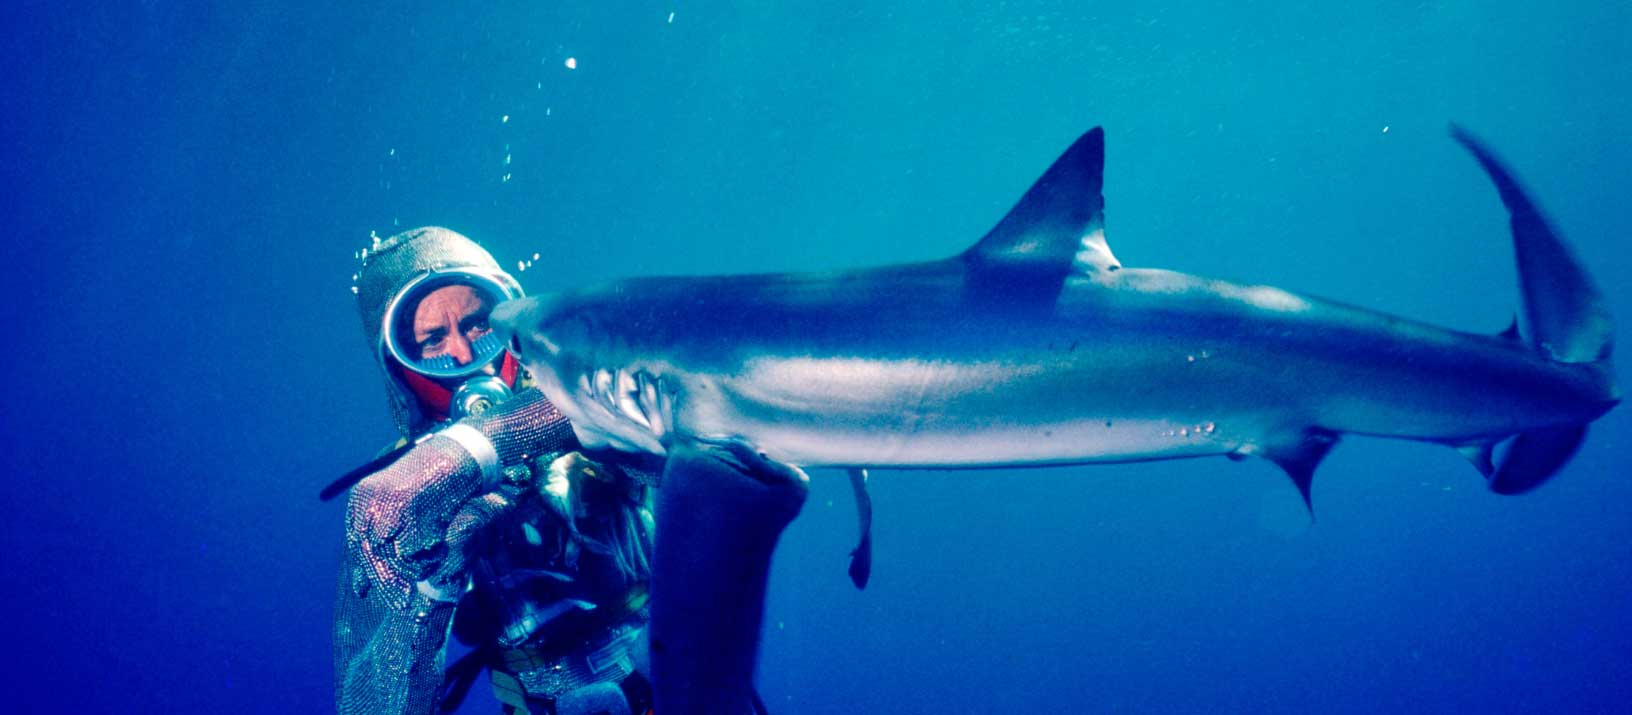 Female diver, Valerie Taylor, underwater in mesh diving suit being bitten on the arm by a shark